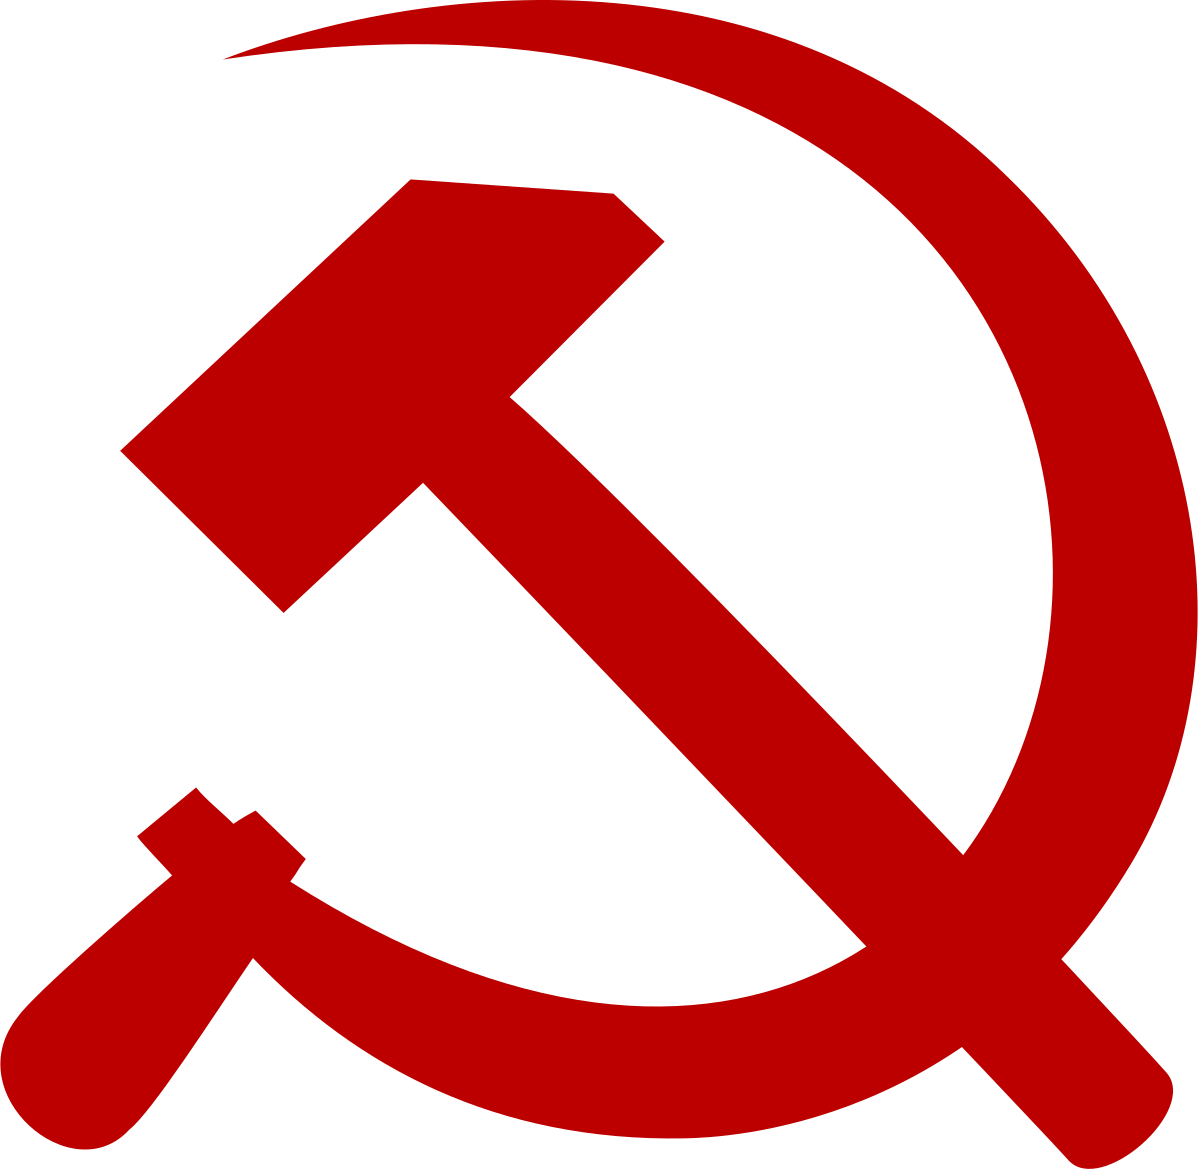 Ussr proletariat clipart banner free stock Hammer and sickle - Wikipedia banner free stock